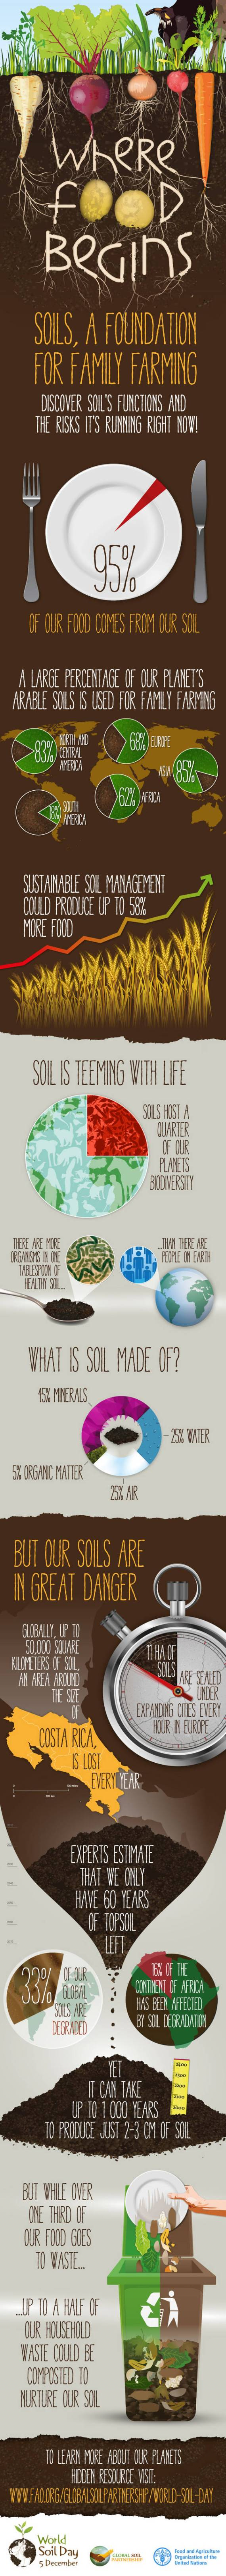 World Soil Day Infographic